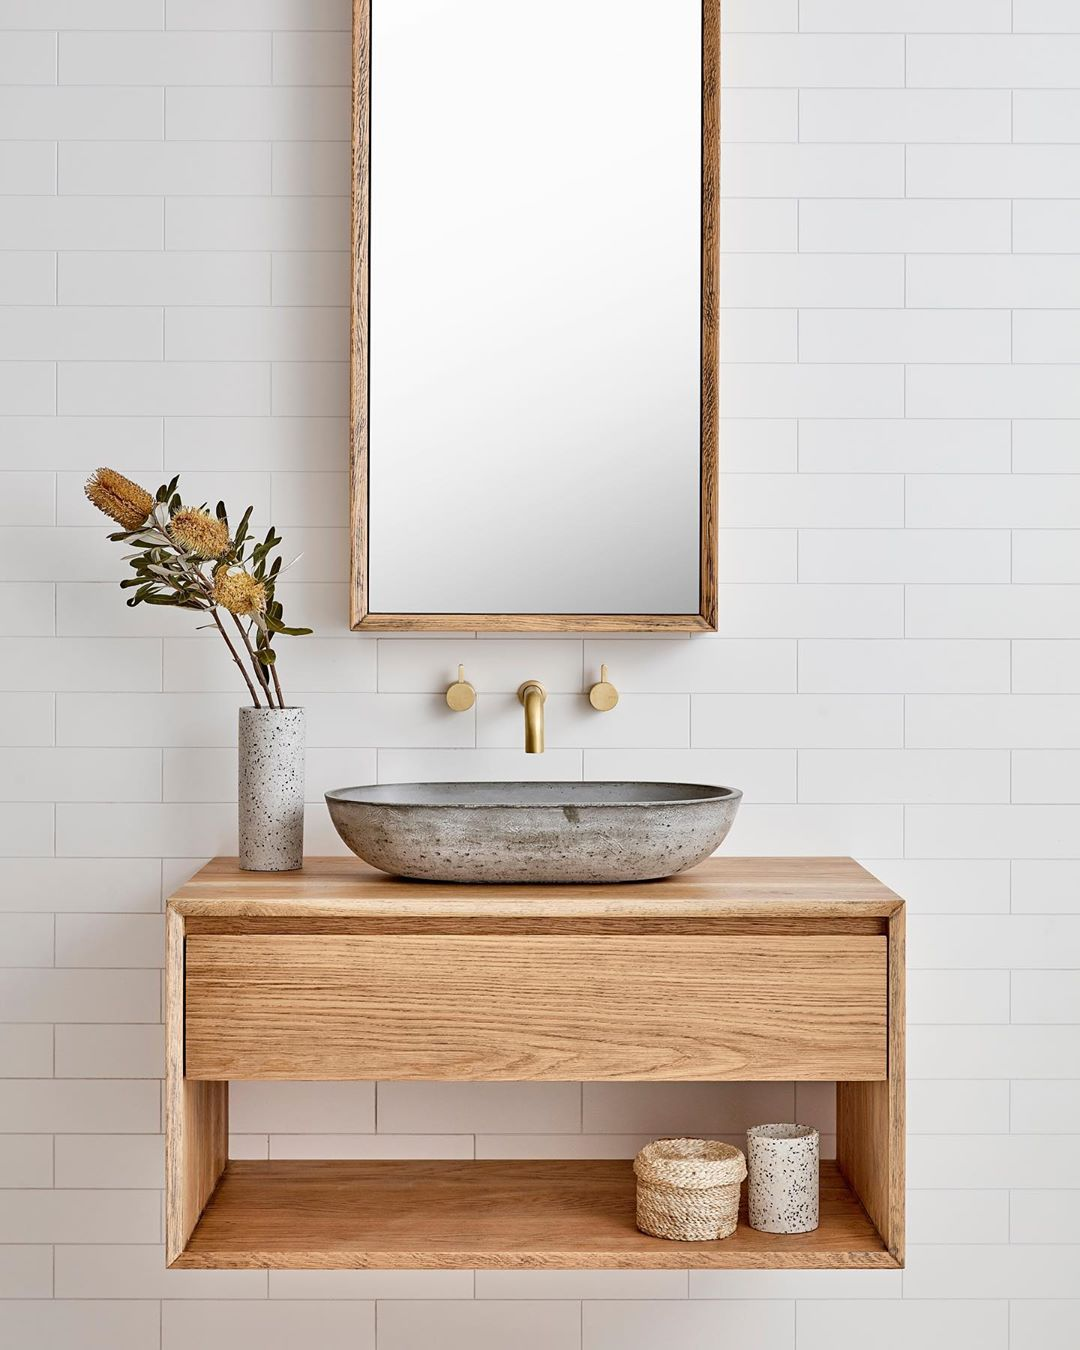 Bespoke wood vanity with vessel sink and white wall of subway tile - Loughlin Furniture. #bespokebathroom #bathroomdesign #customvanity #vesselsink